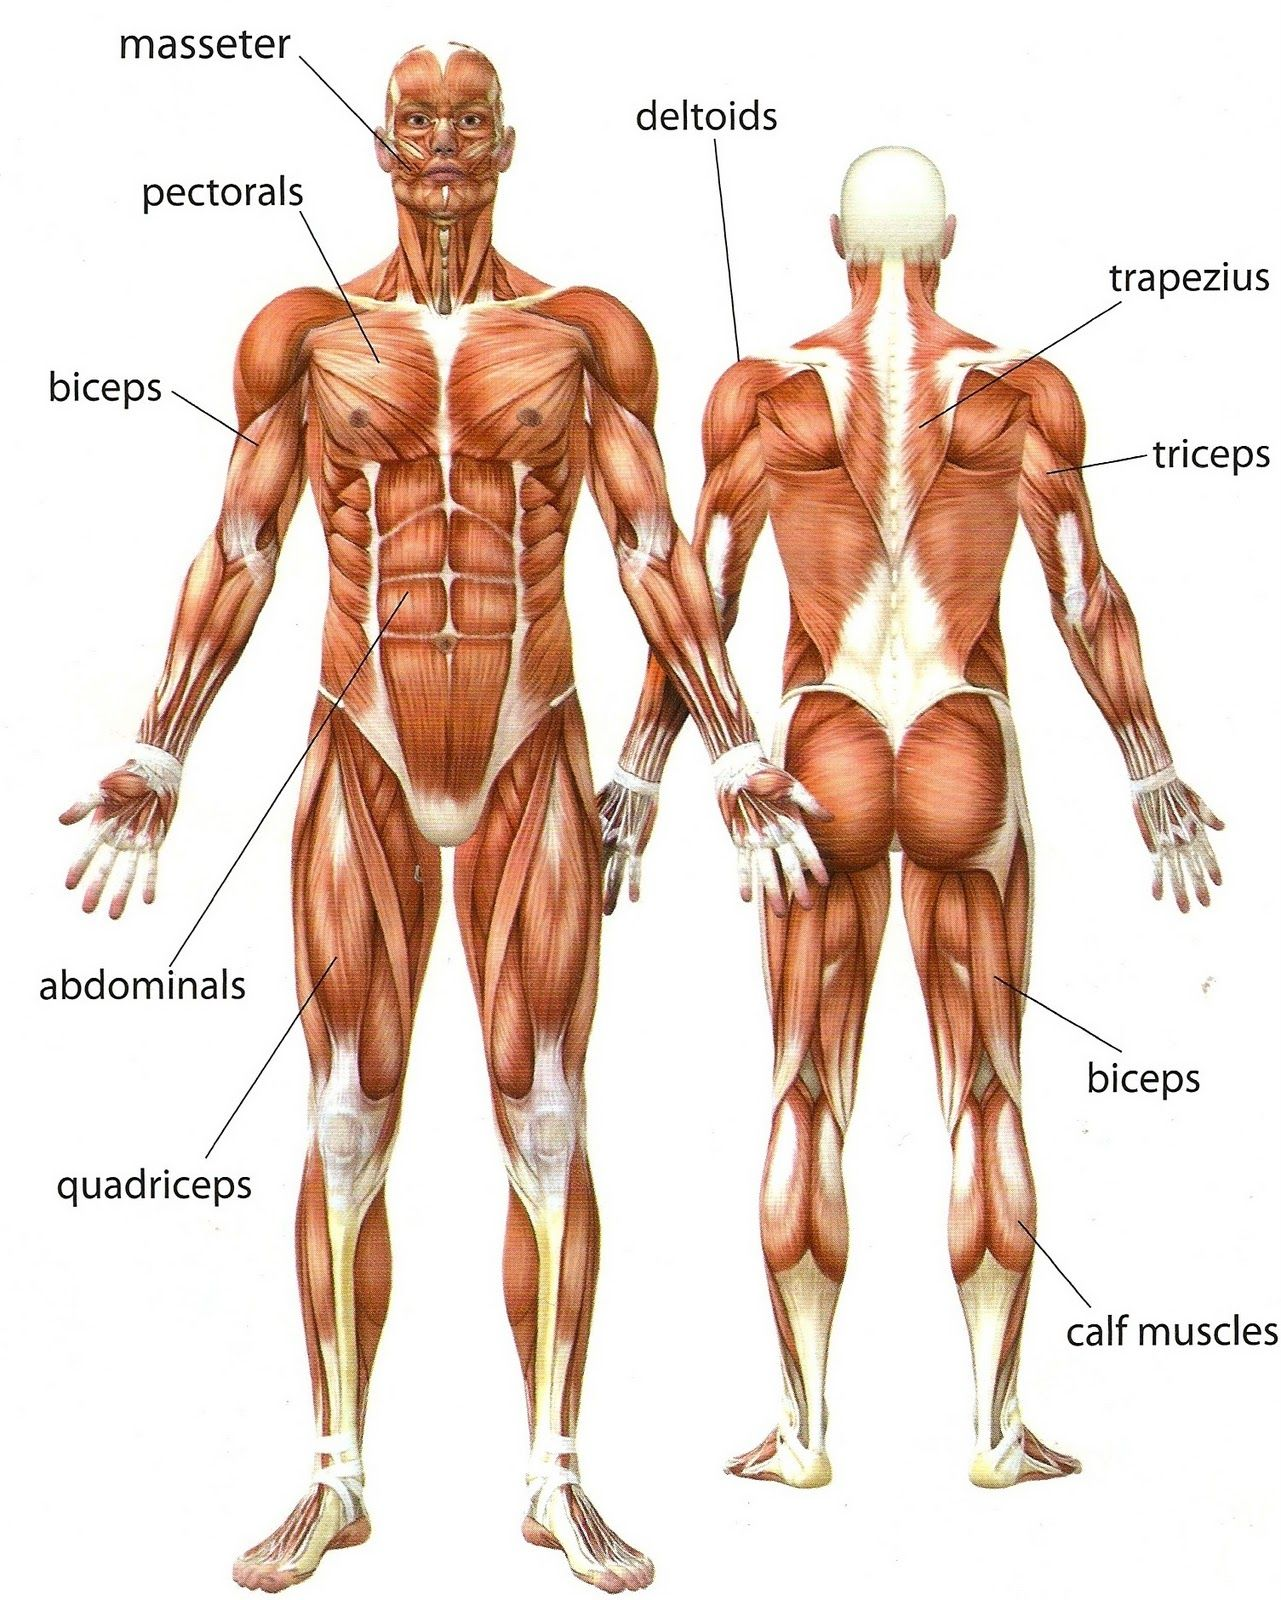 A Diagram Of The Muscular System . A Diagram Of The Muscular System.